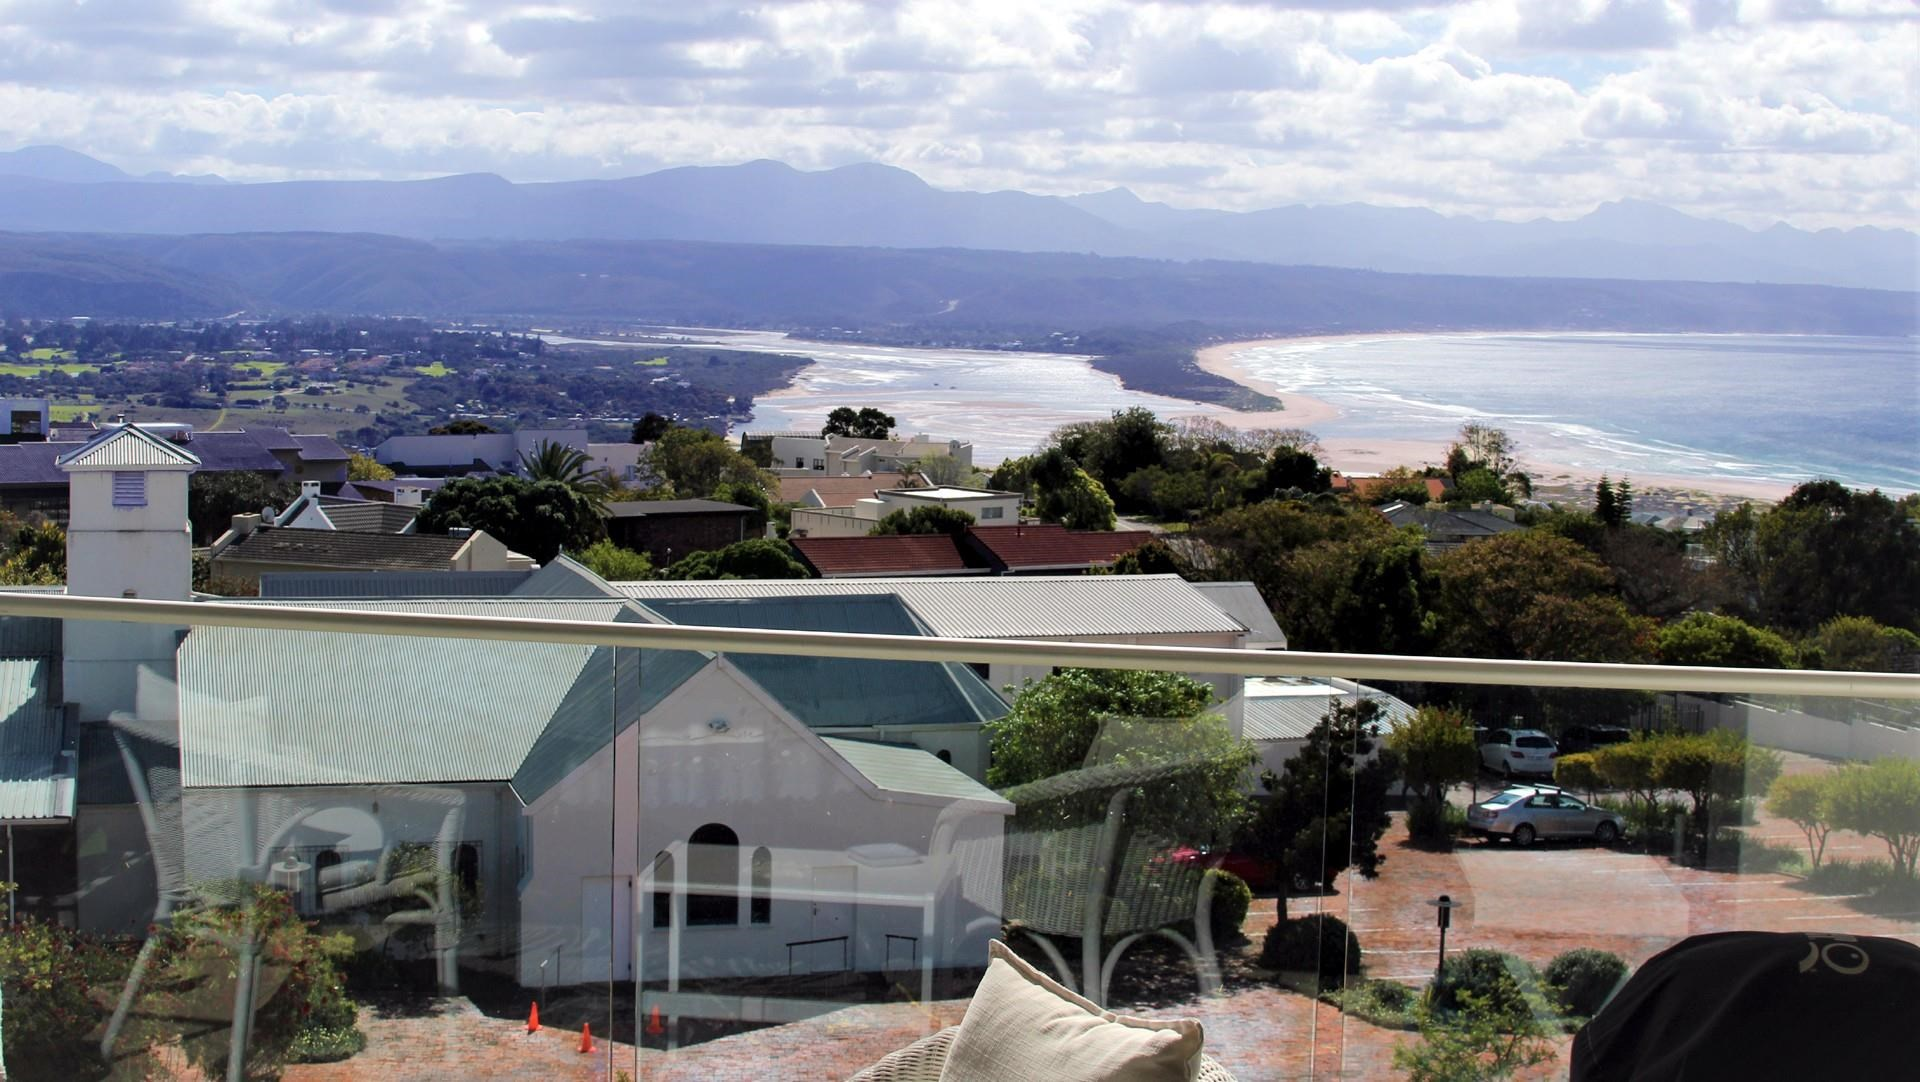 3 Bedroom Apartment for Sale in Plett Central